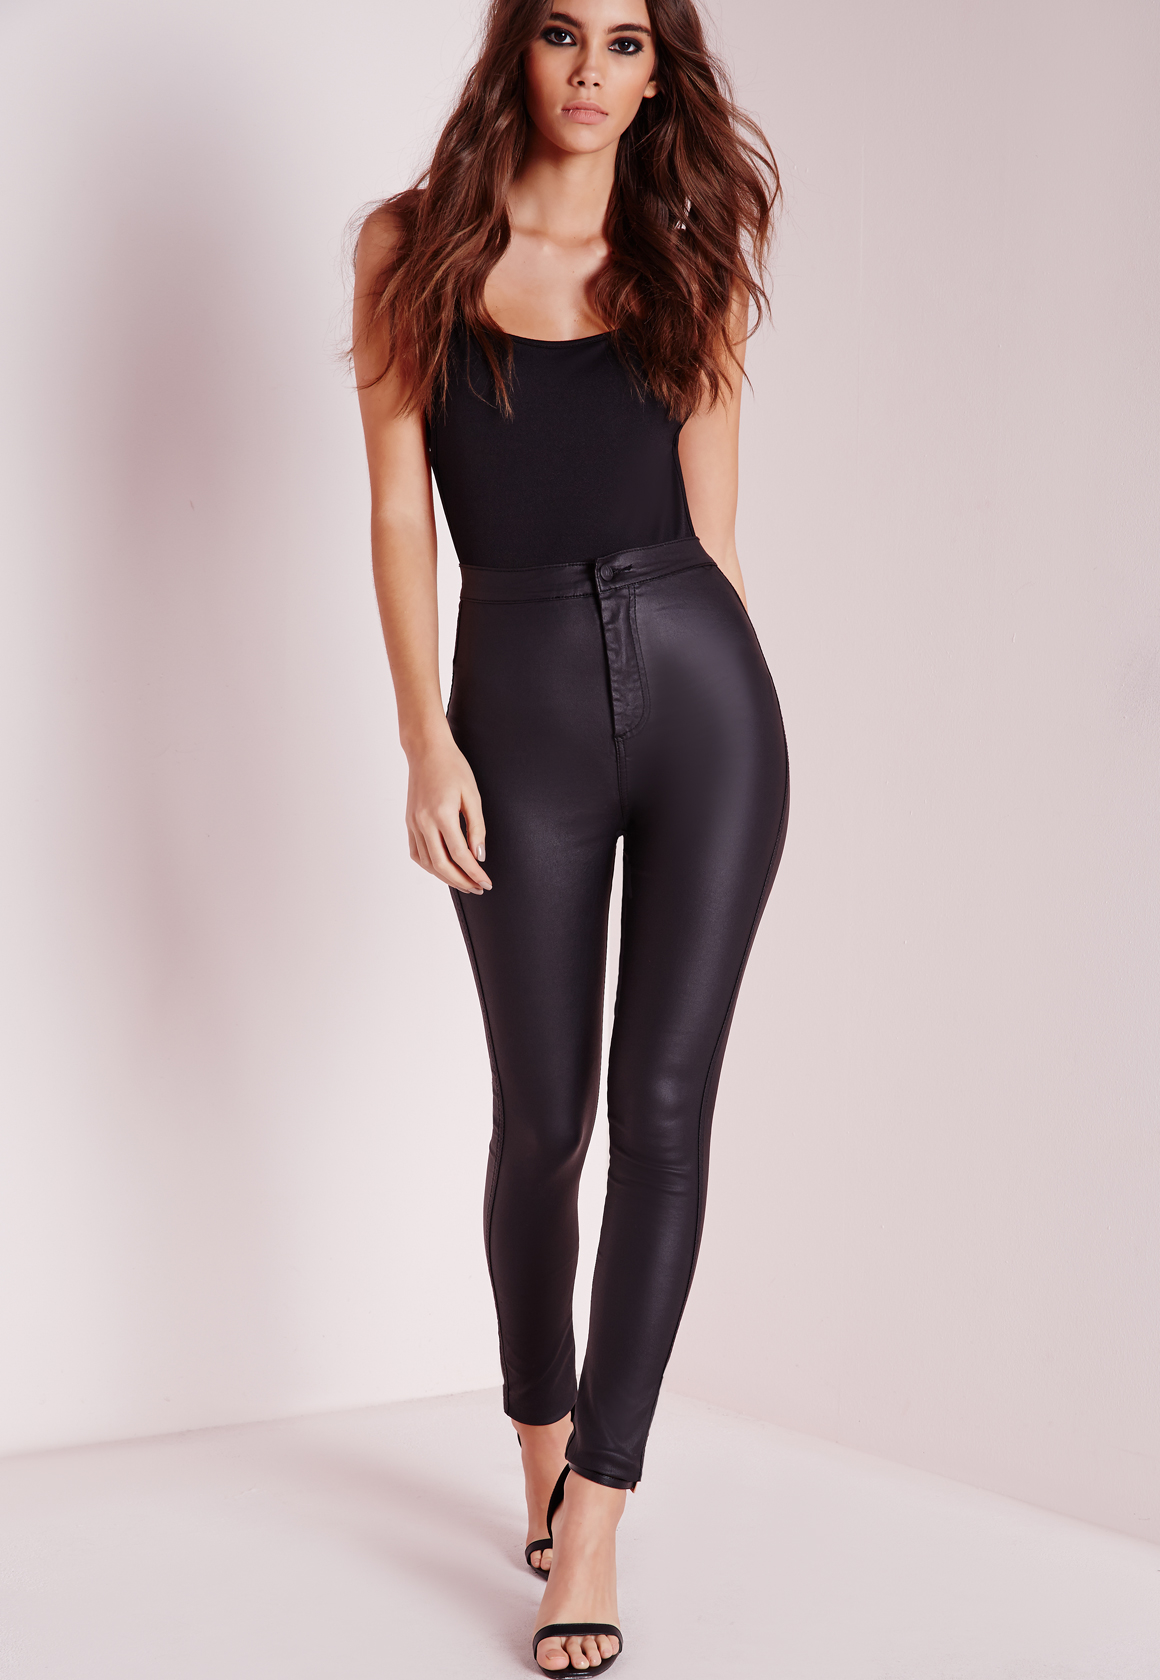 Missguided Vice Super Stretch Wet Look High Waisted Coated Skinny Jeans Black In Black -4231